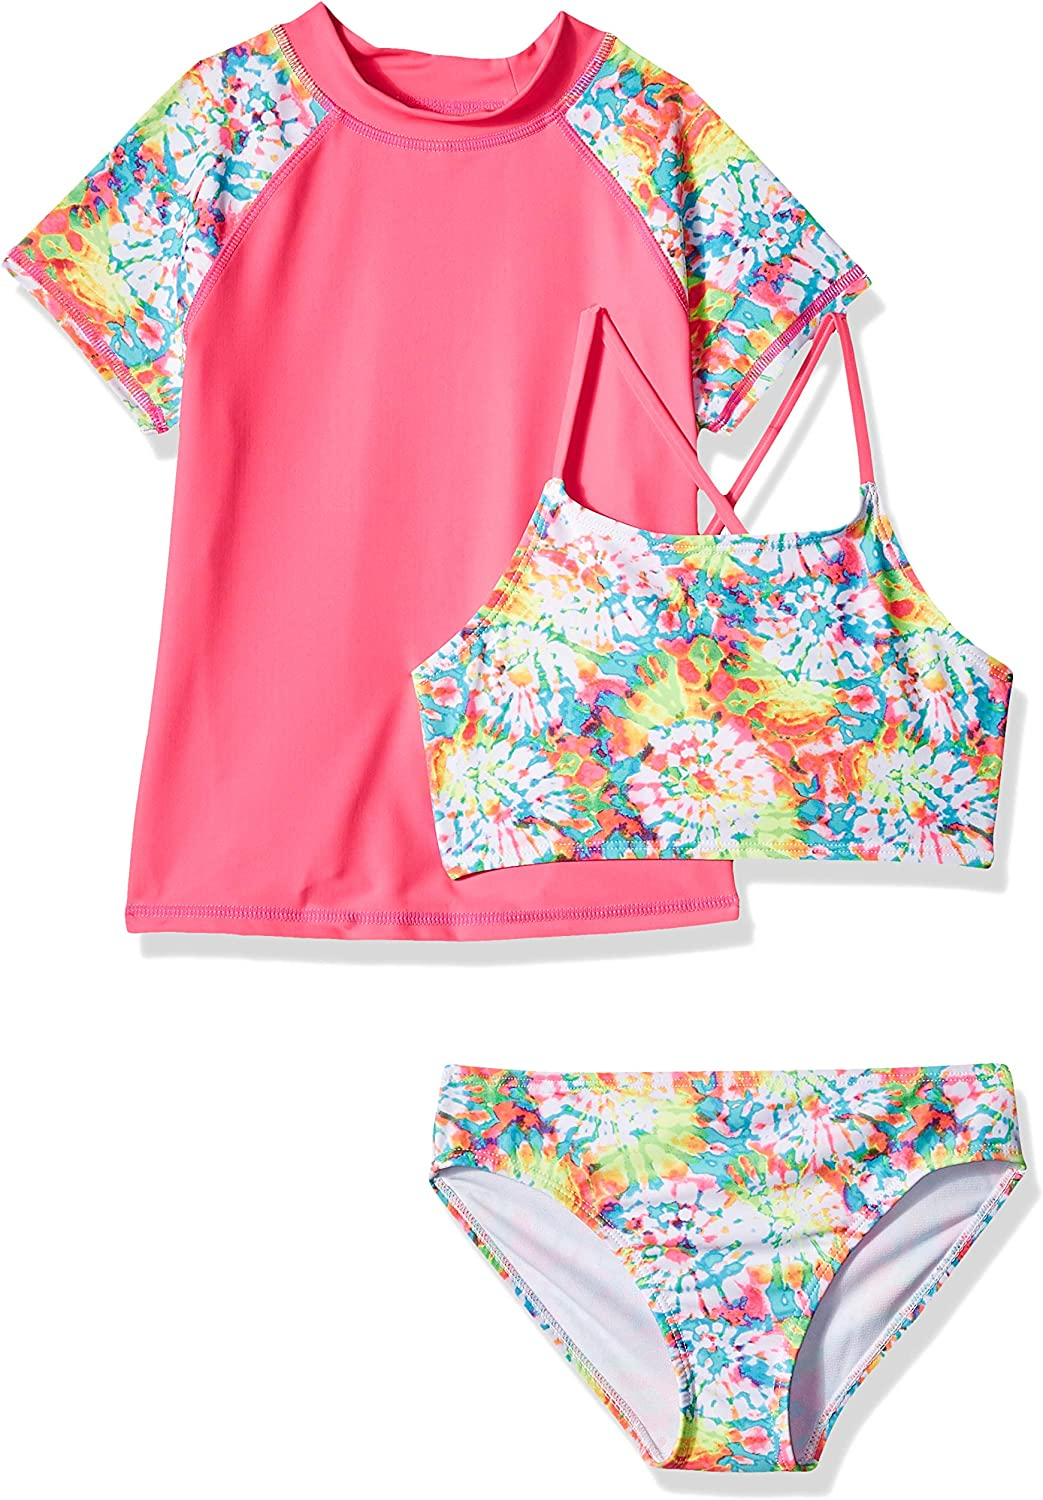 Rivstar Big Girls Bikini with Rash Shirt Cover Up 2pc